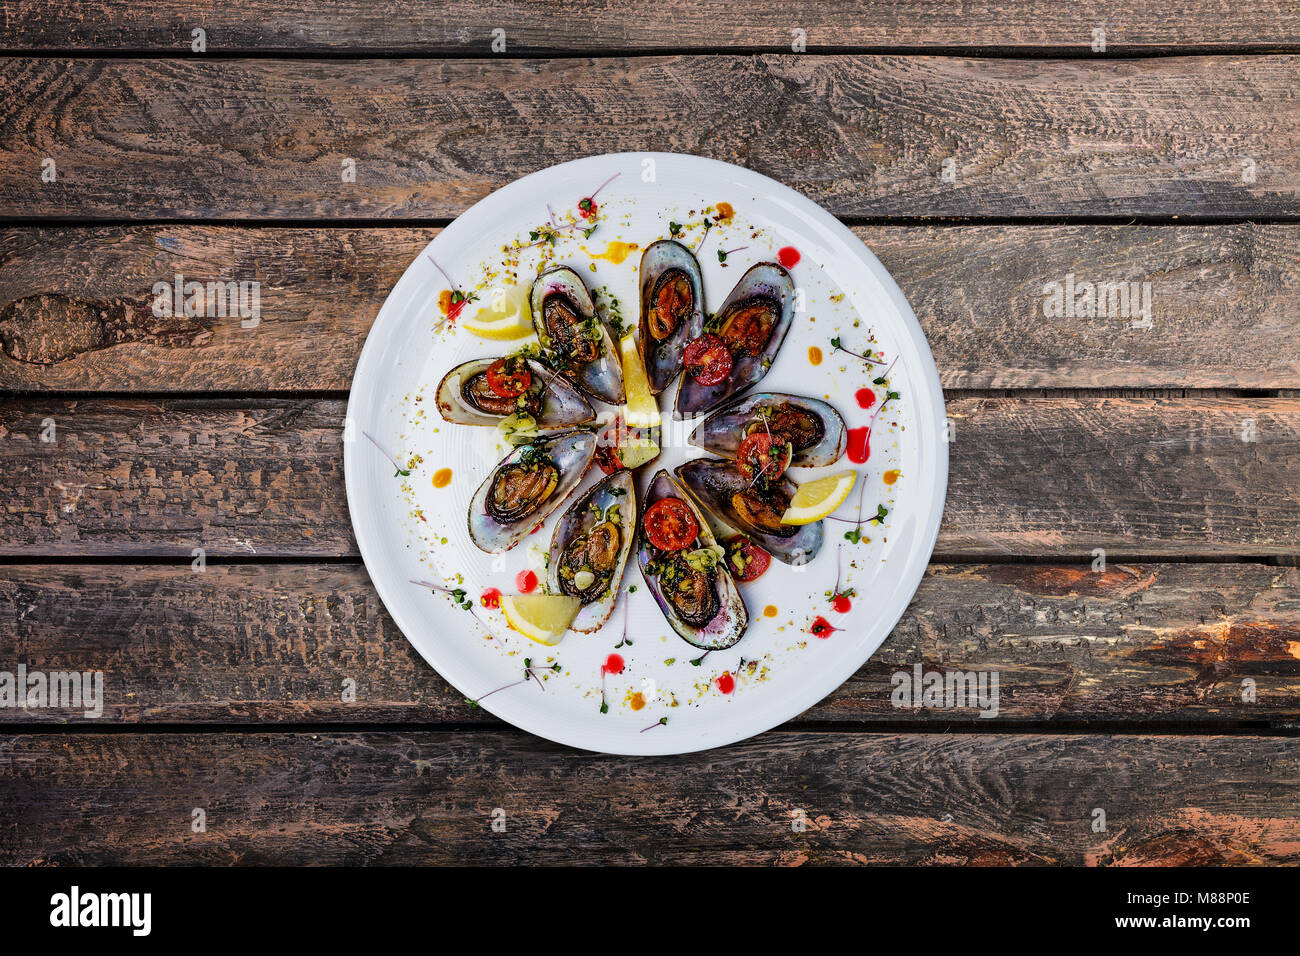 Plate of mussels in garlic sauce. - Stock Image